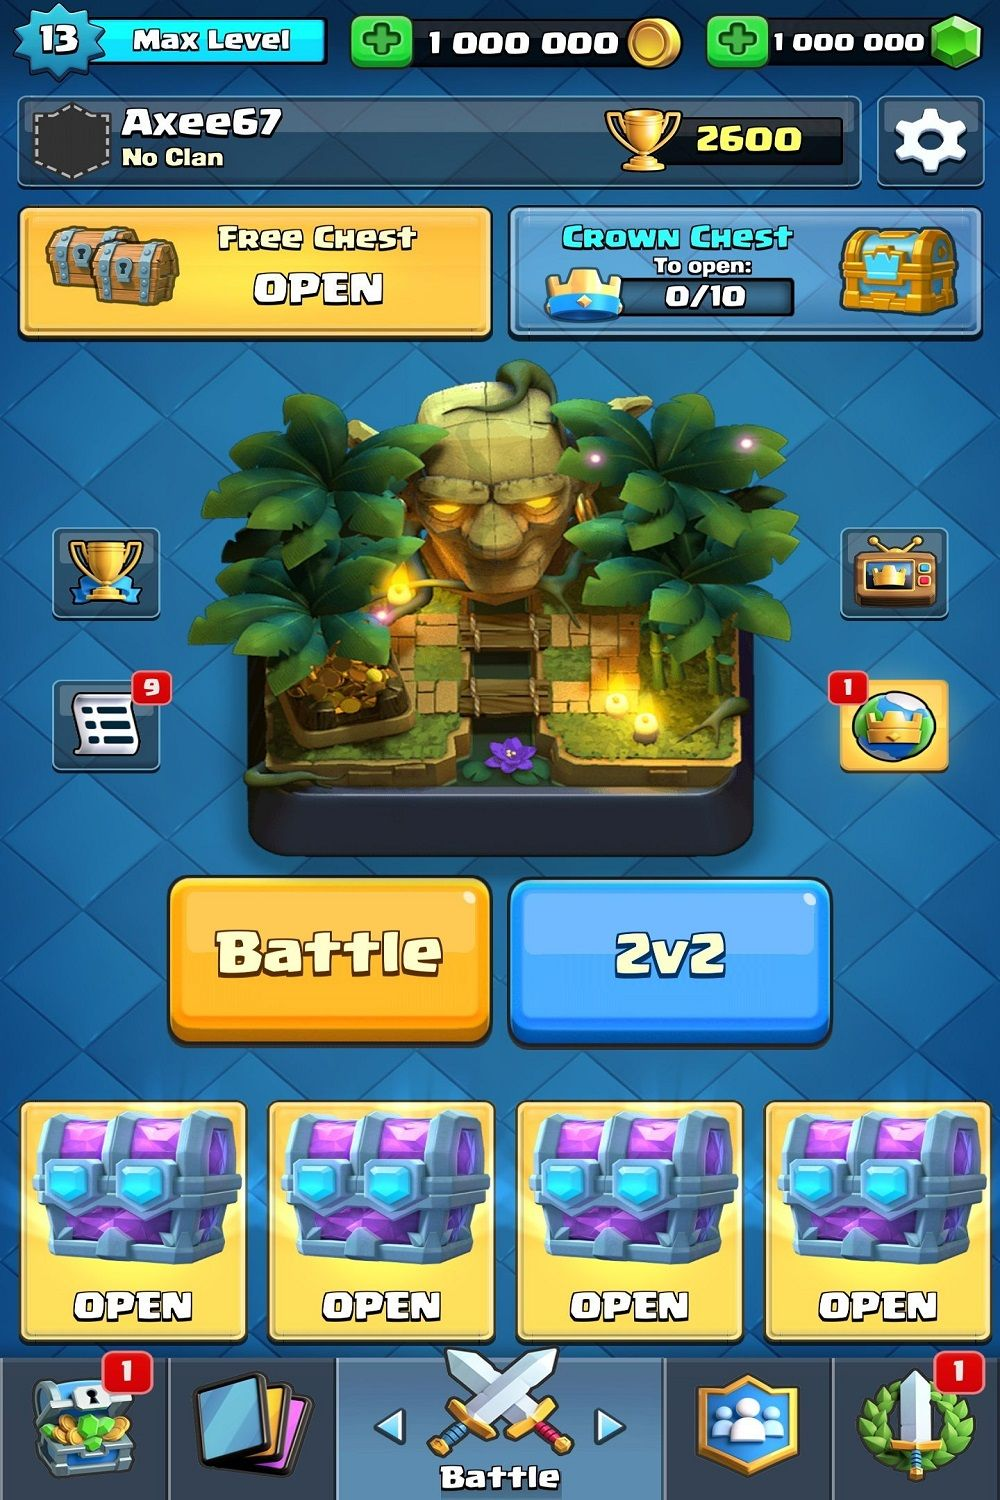 Get Clash Royale Unlimited Gems For Free! 100% Working [18 Oct 2020]